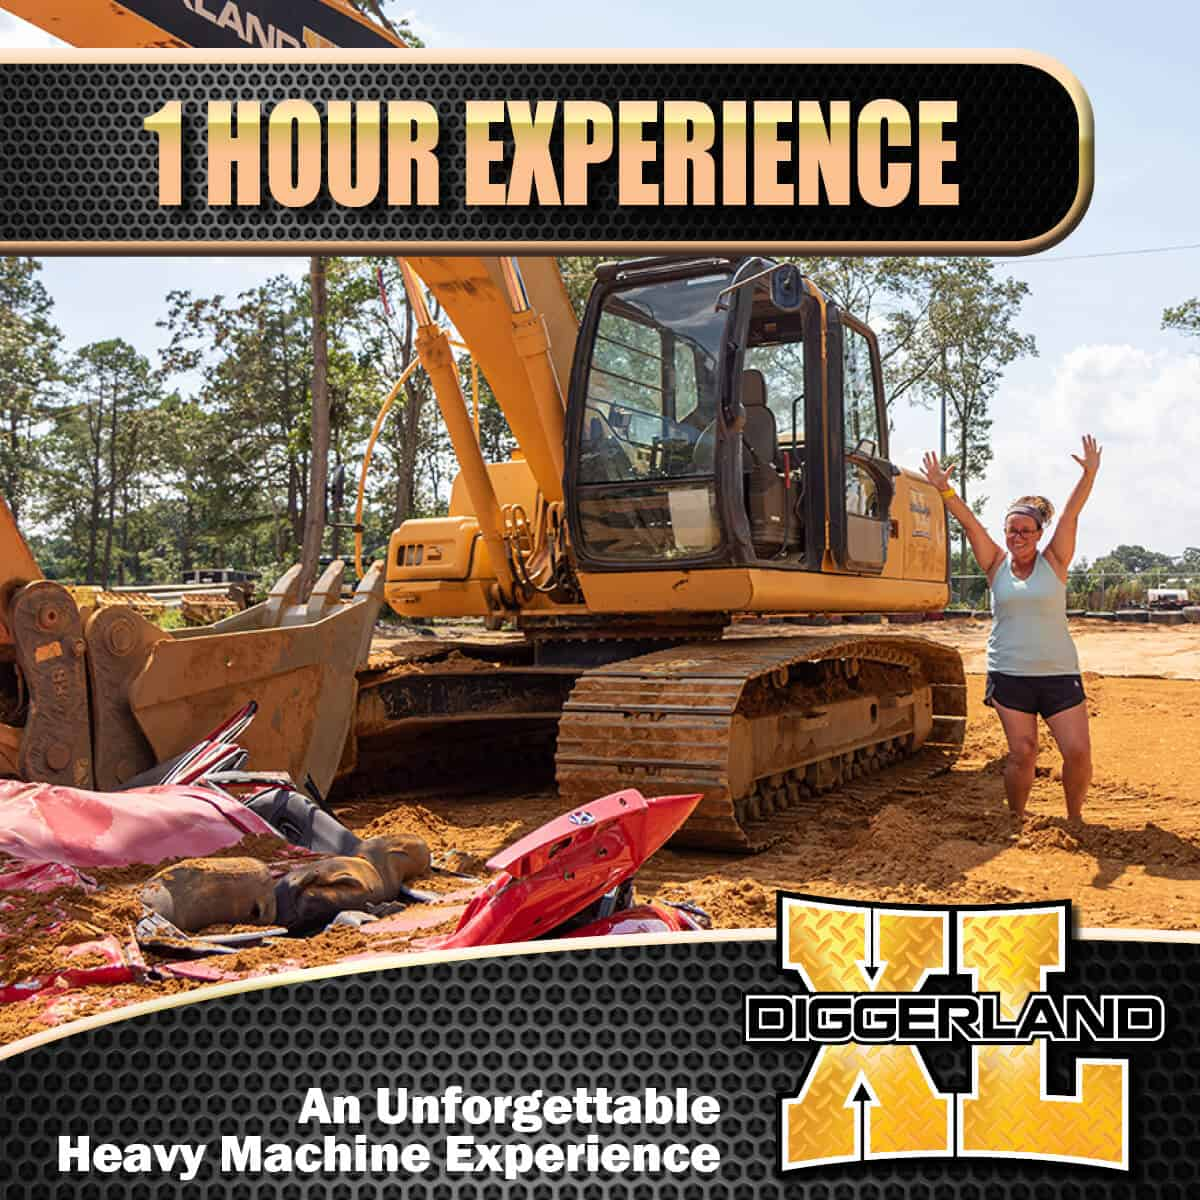 Diggerland XL experience 1 hour package